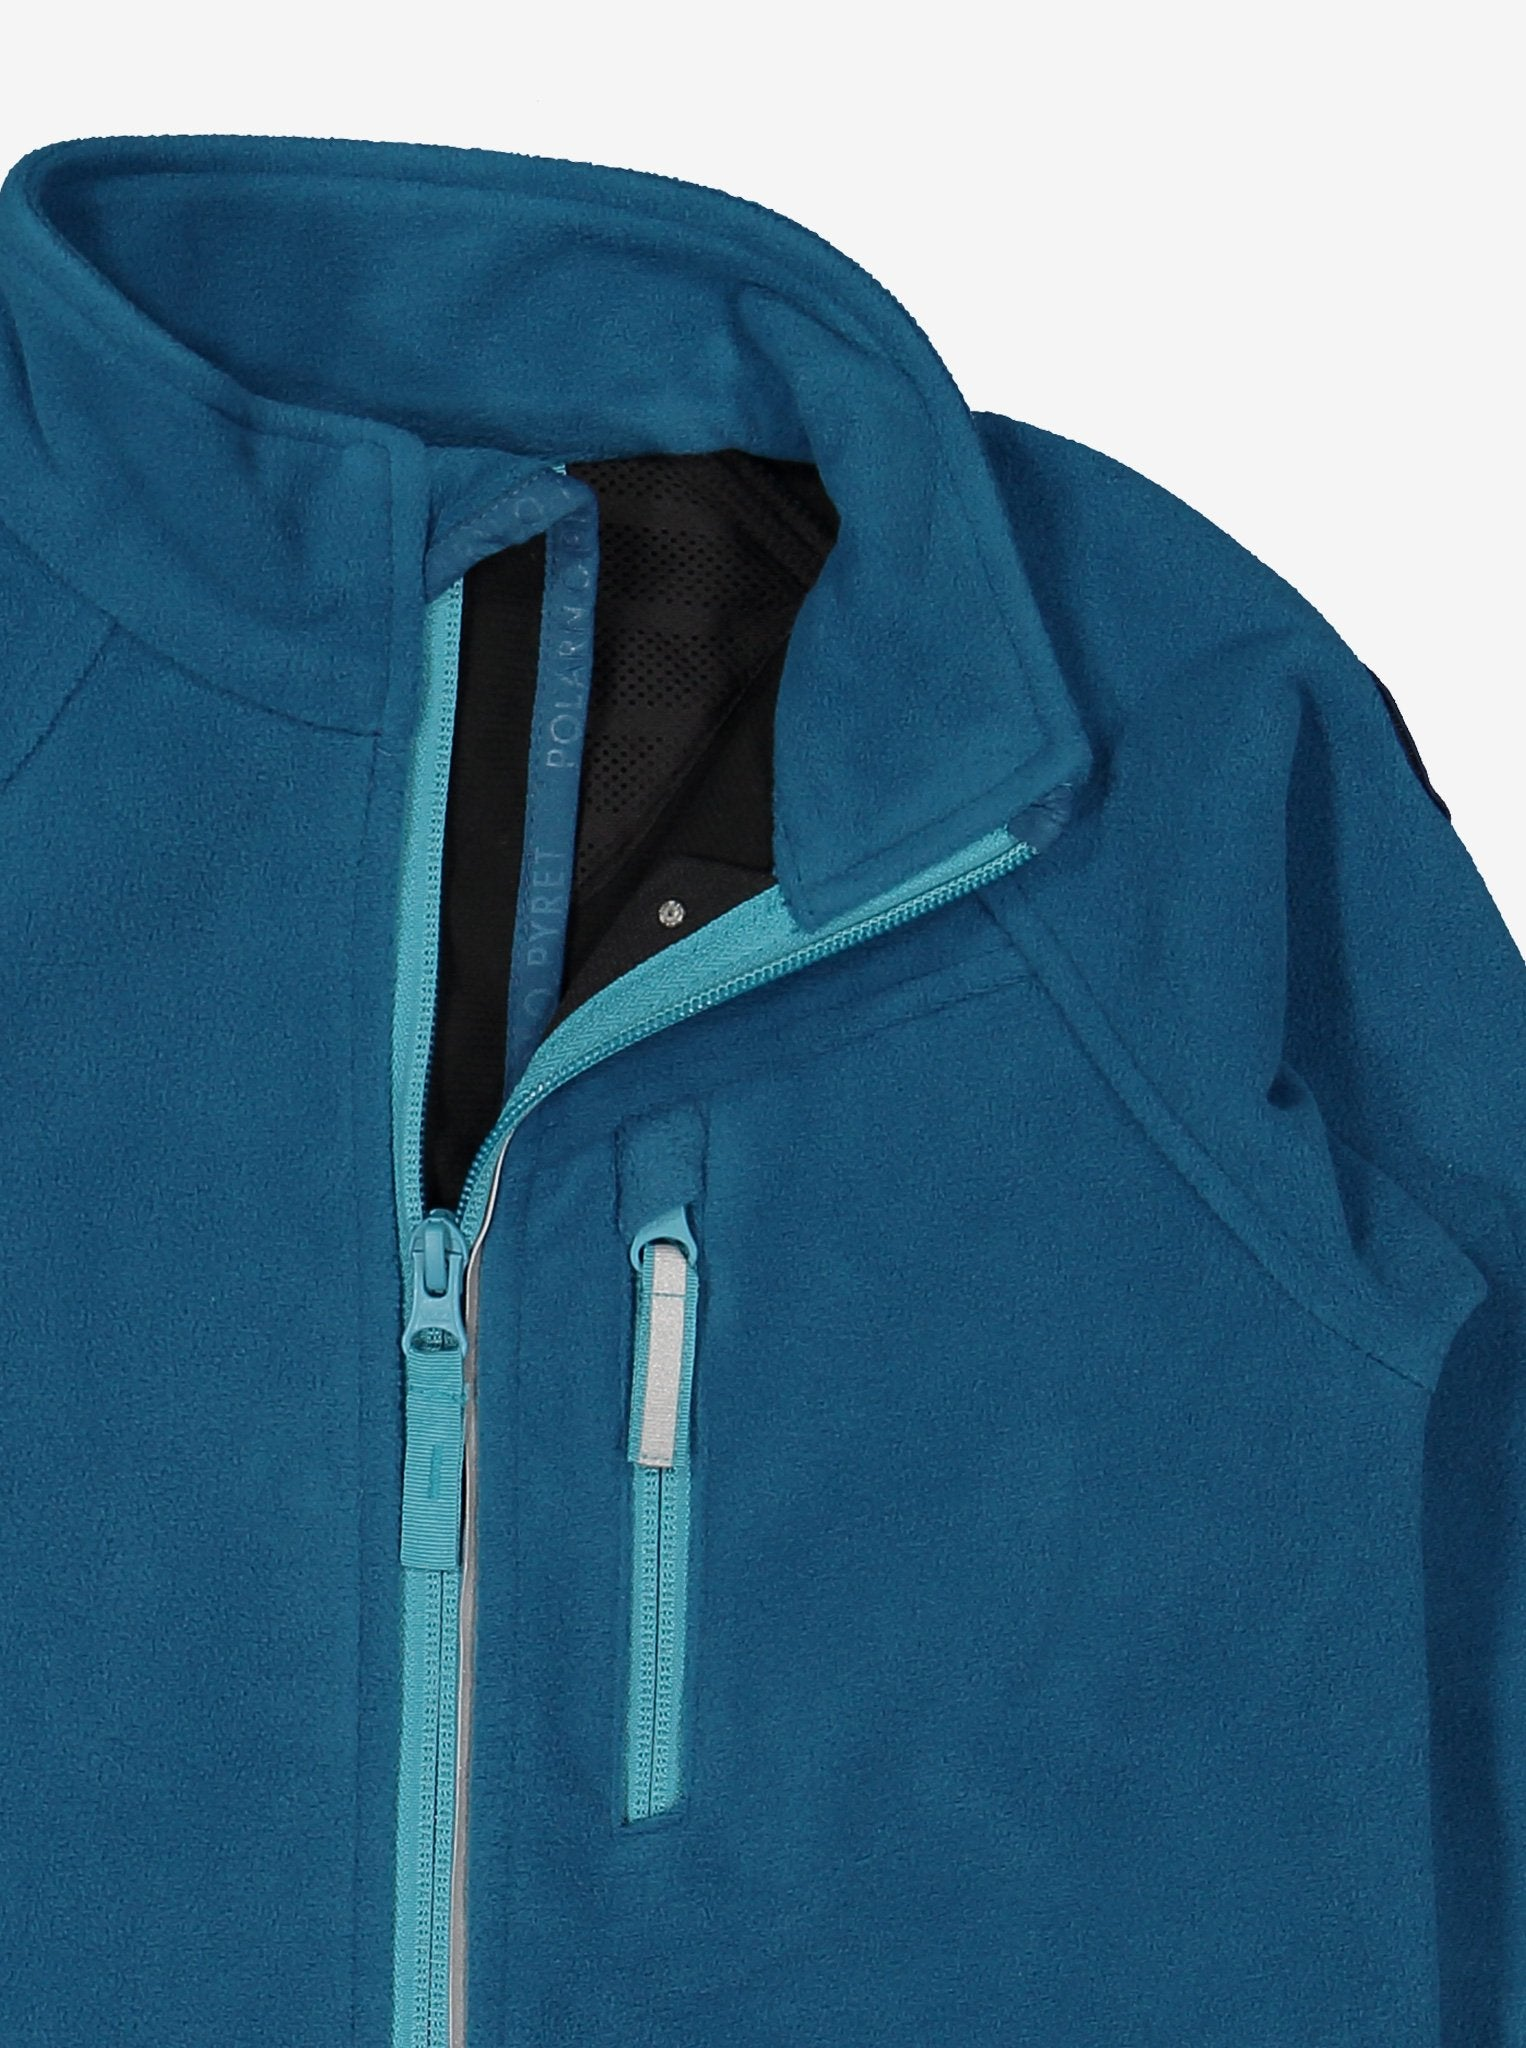 Kids Blue Fleece & Waterproof Jacket